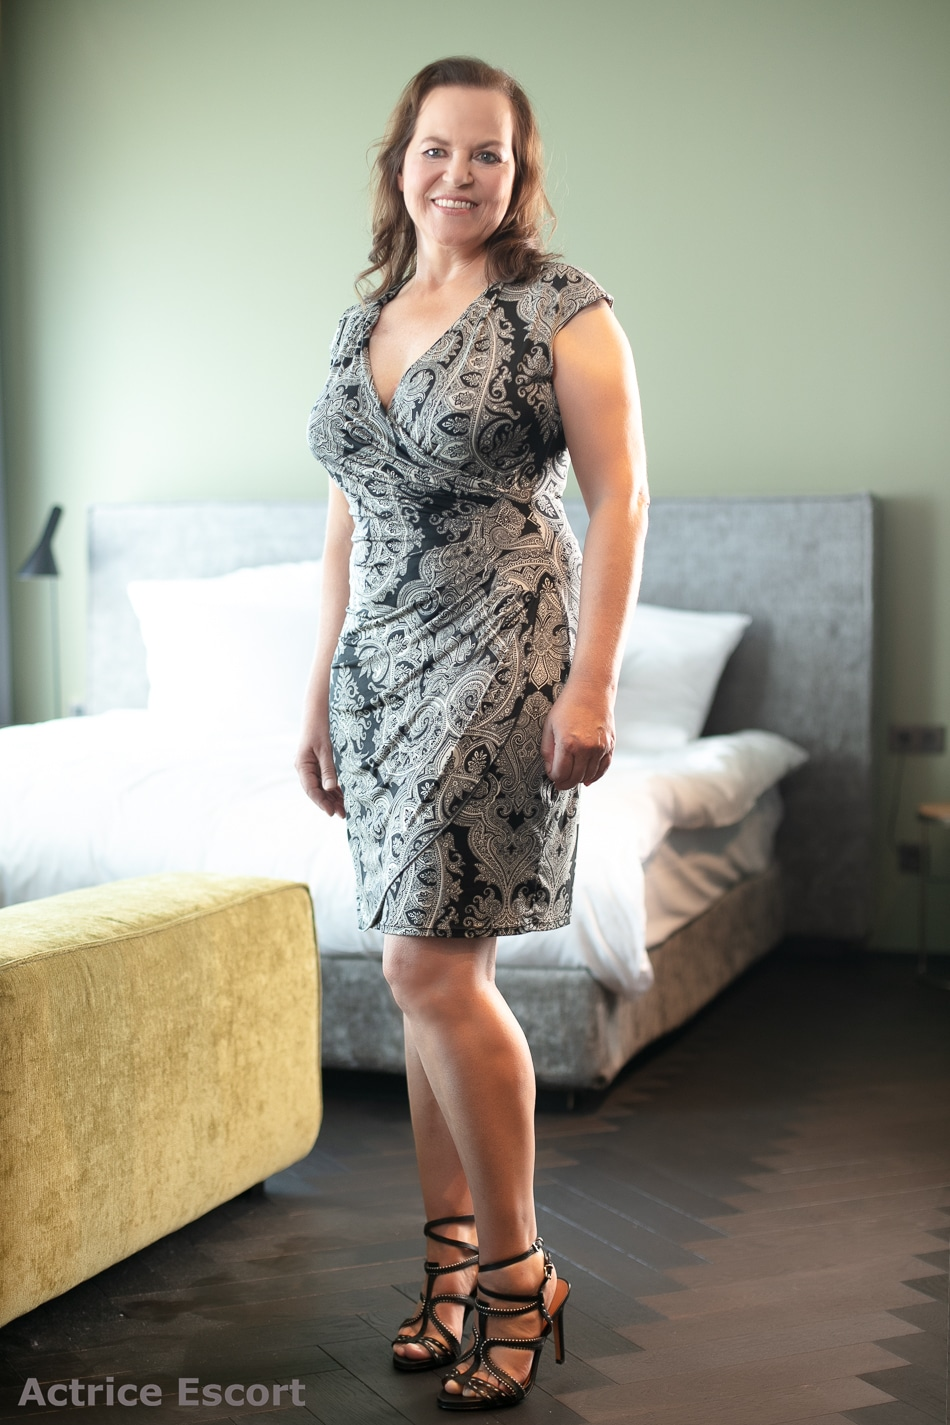 Bettina reife Frau Escortservice Duesseldorf(7)